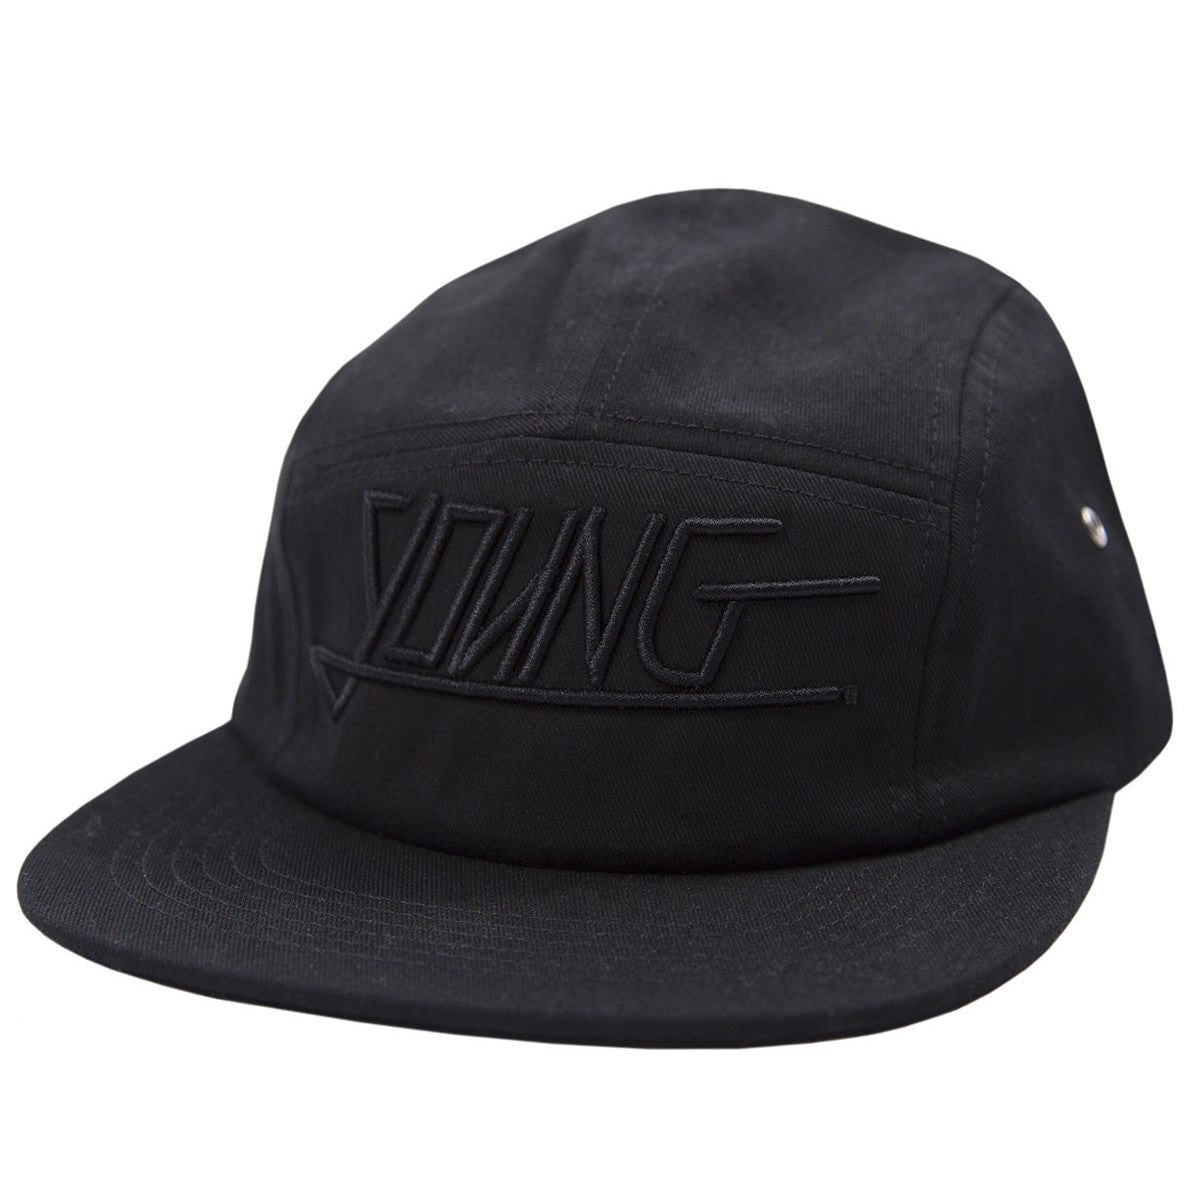 YOUNG 5 PANEL (BLACK/BLACK)